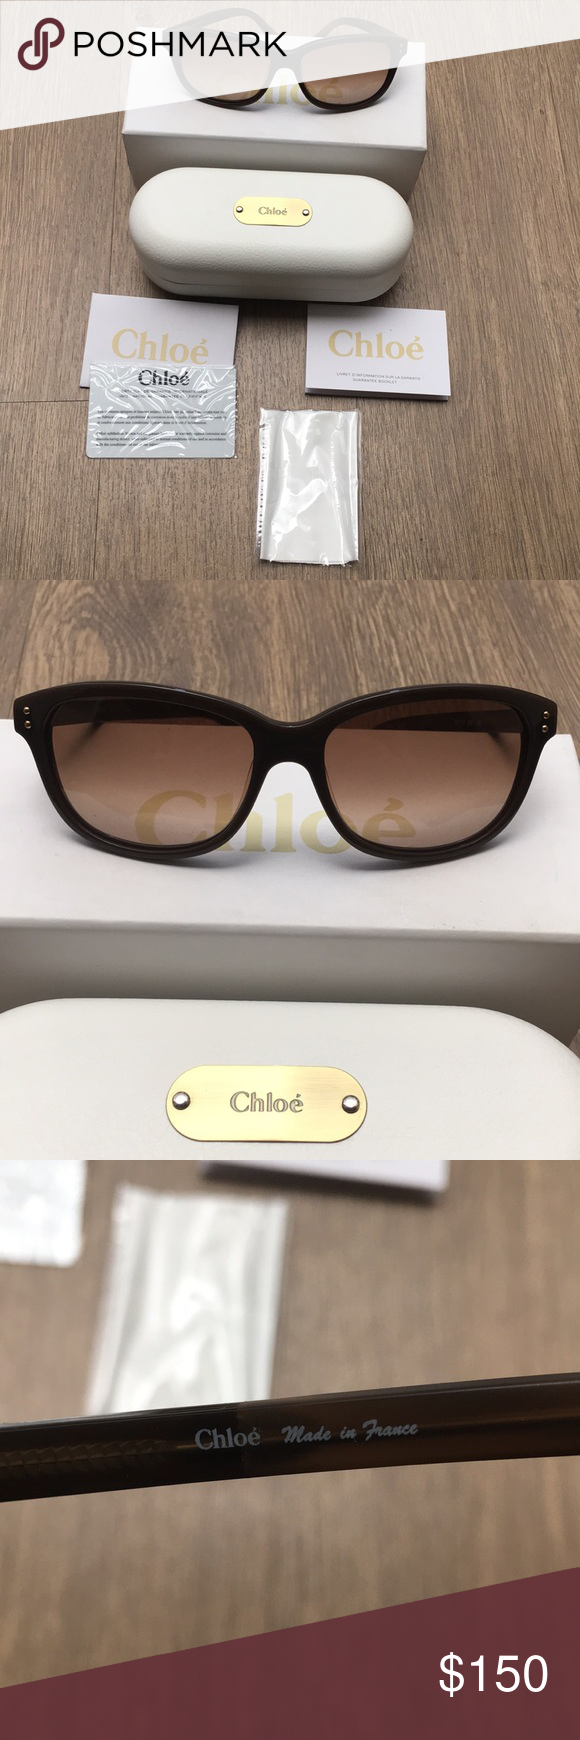 436aa94af931 I just added this listing on Poshmark  Chloe Brunelle Sunglasses.   shopmycloset  poshmark  fashion  shopping  style  forsale  Chloe   Accessories